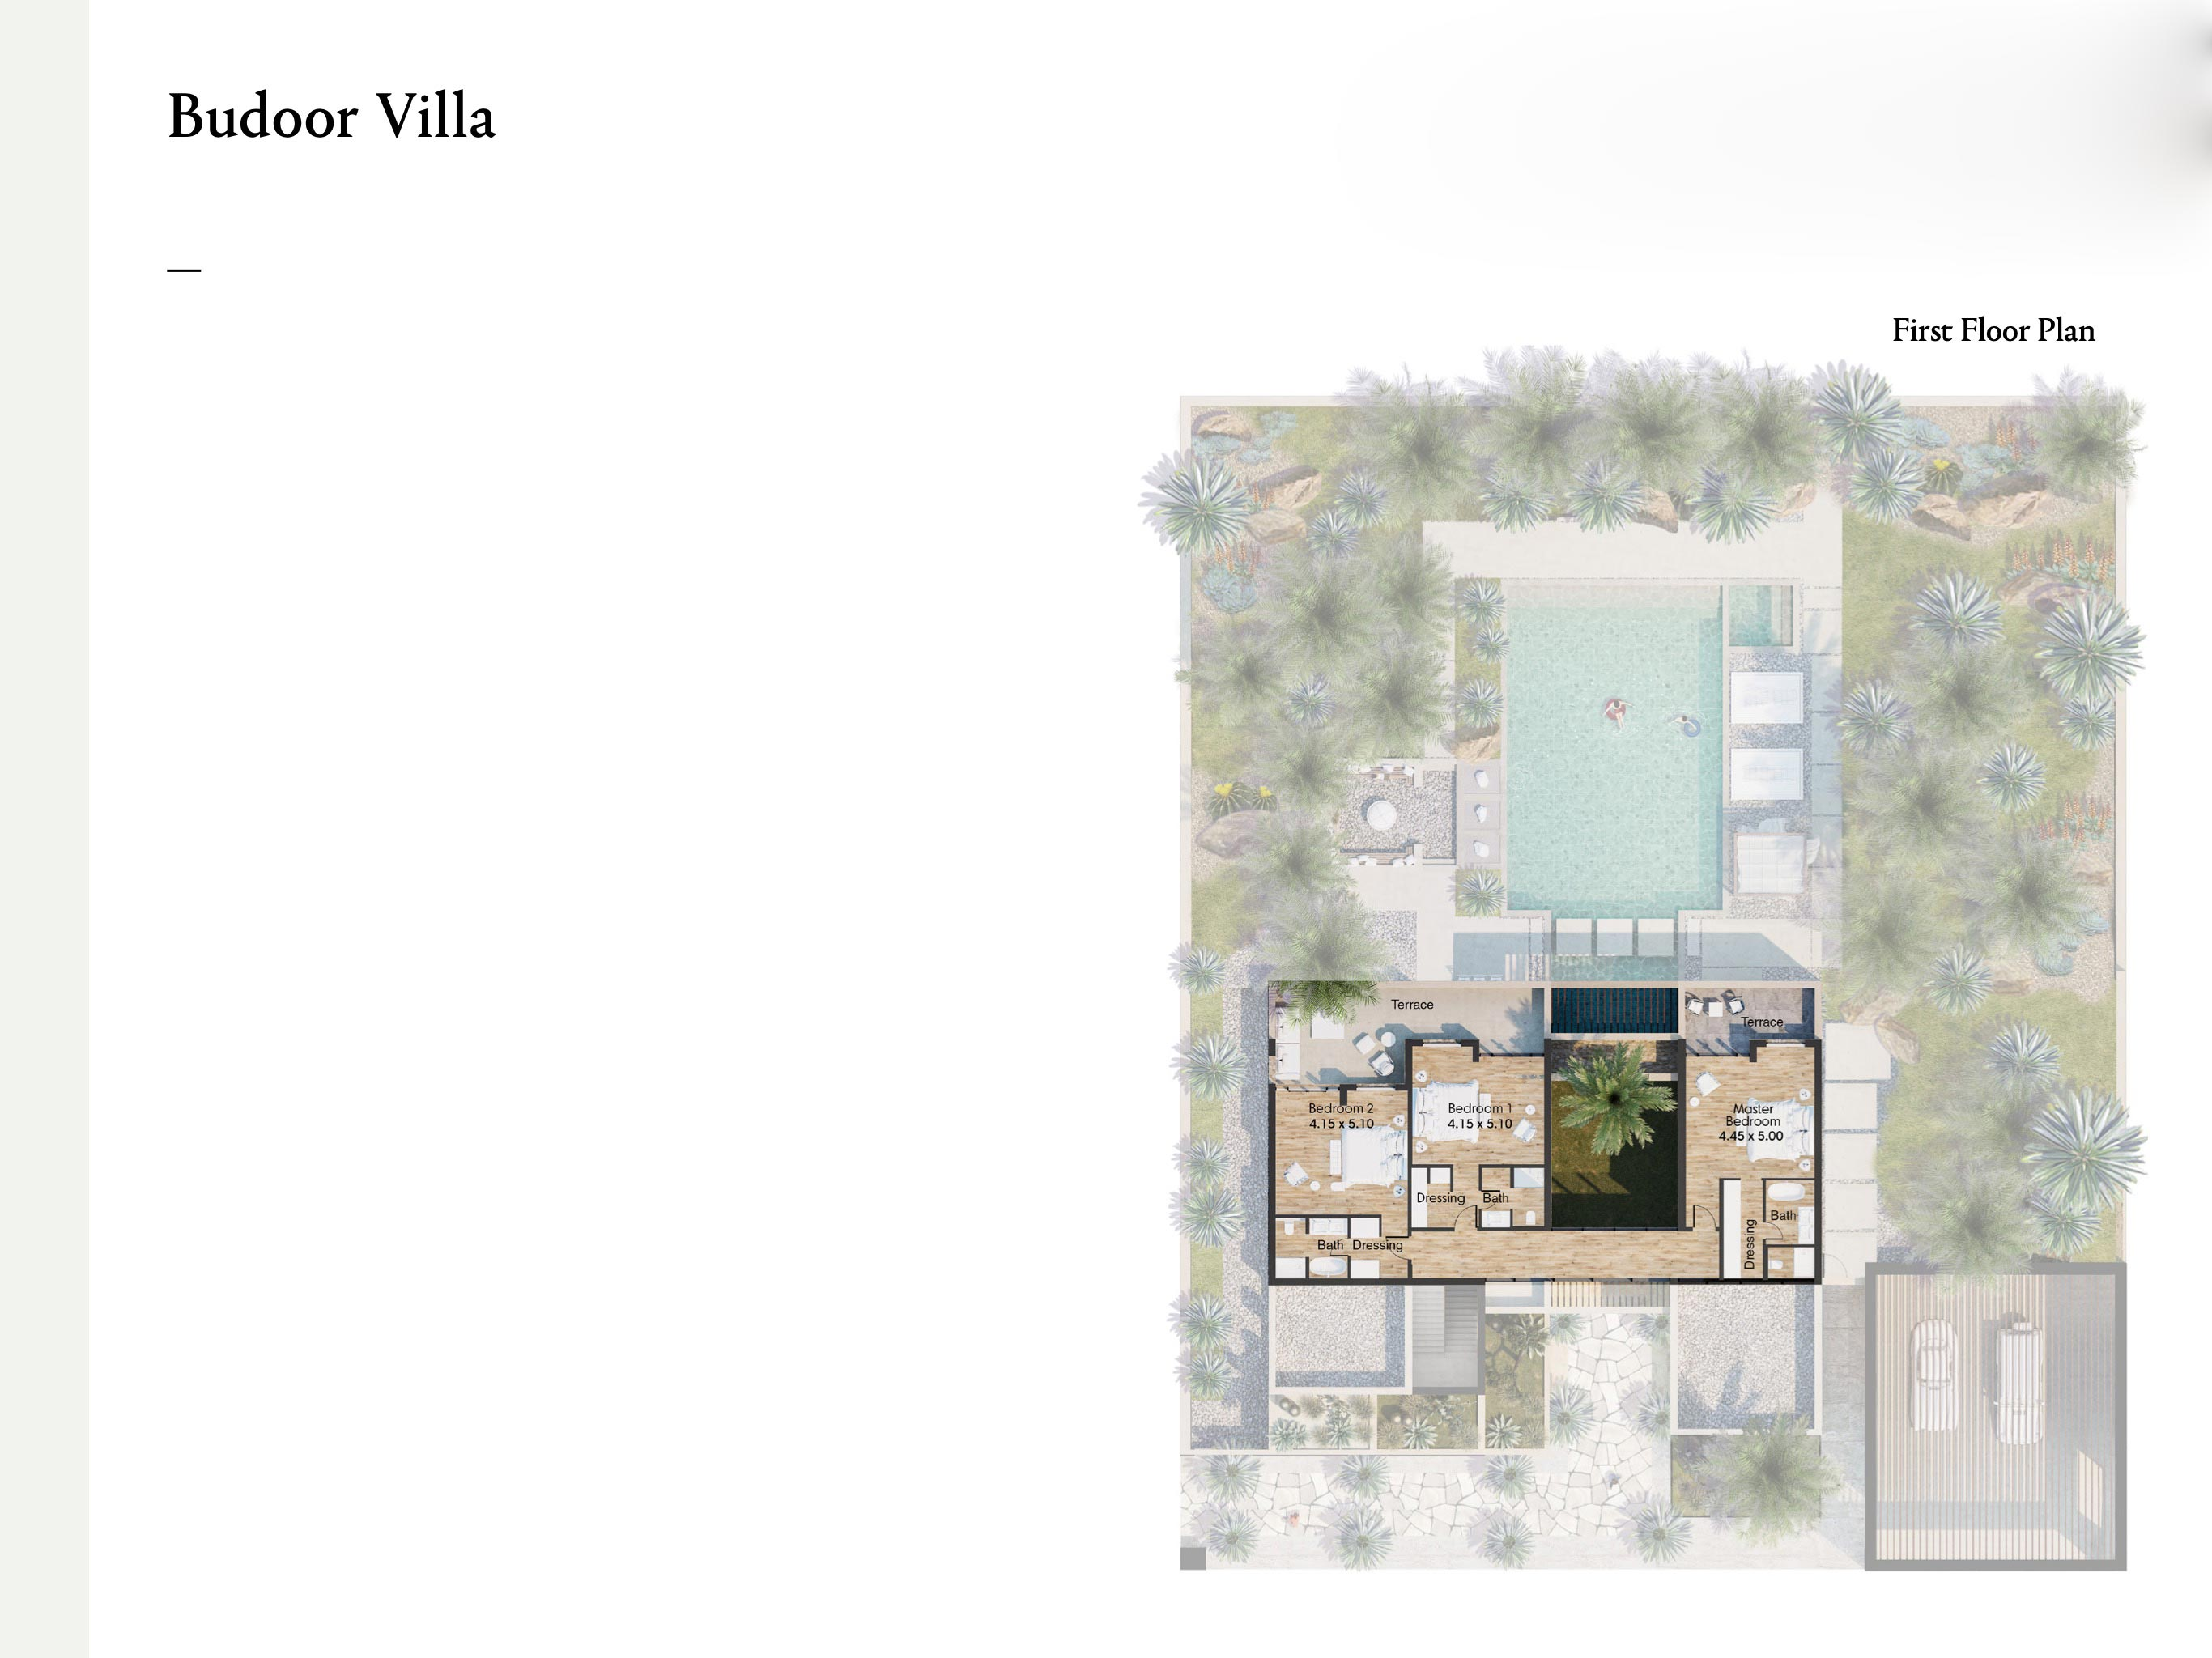 Budoor Villa - 5 Bedroom villas with a size area of 635 sqm